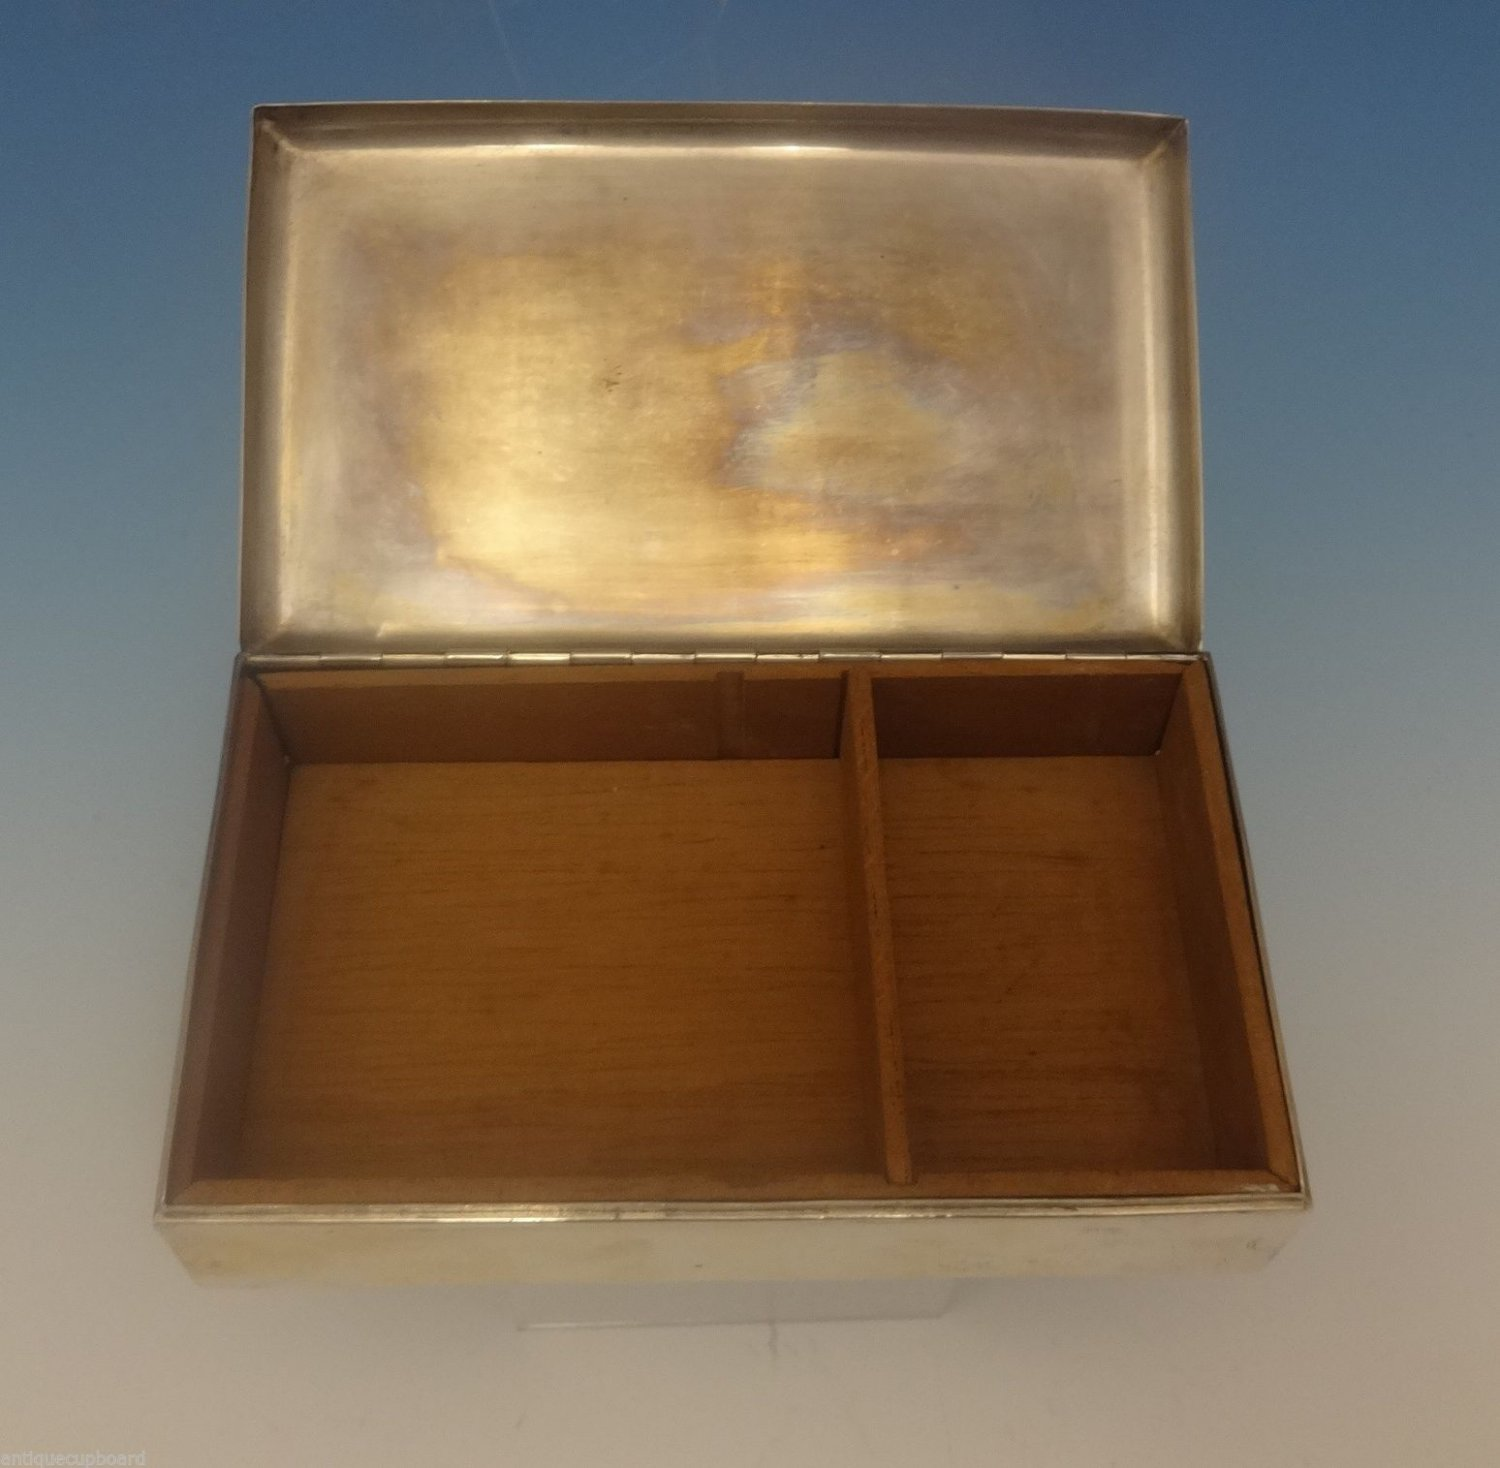 "Cartier Sterling Silver Cigarette Box Wood Lined 6"" X 3 1/2"" (#0329)"